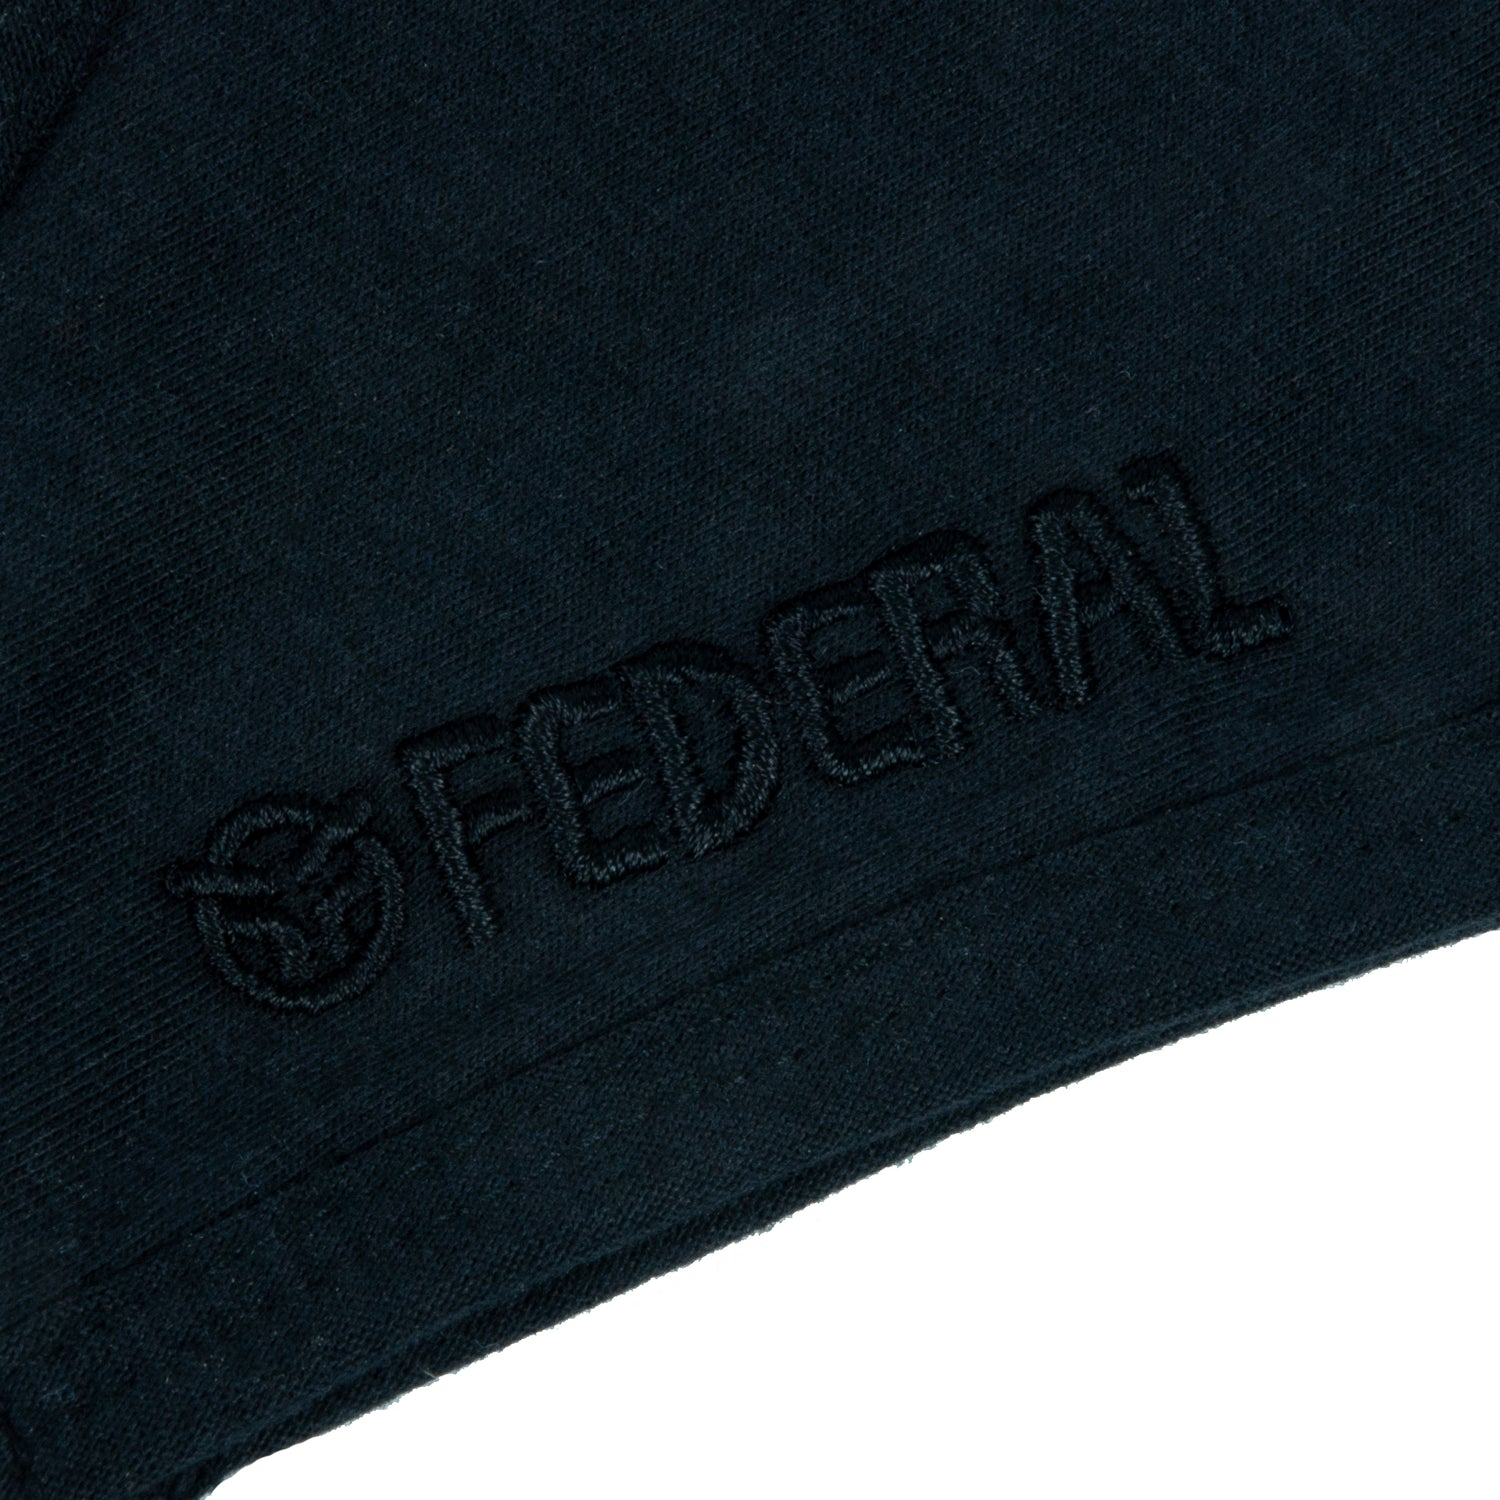 Federal Embroidered Mask - Black With Black Embroidery | BMX